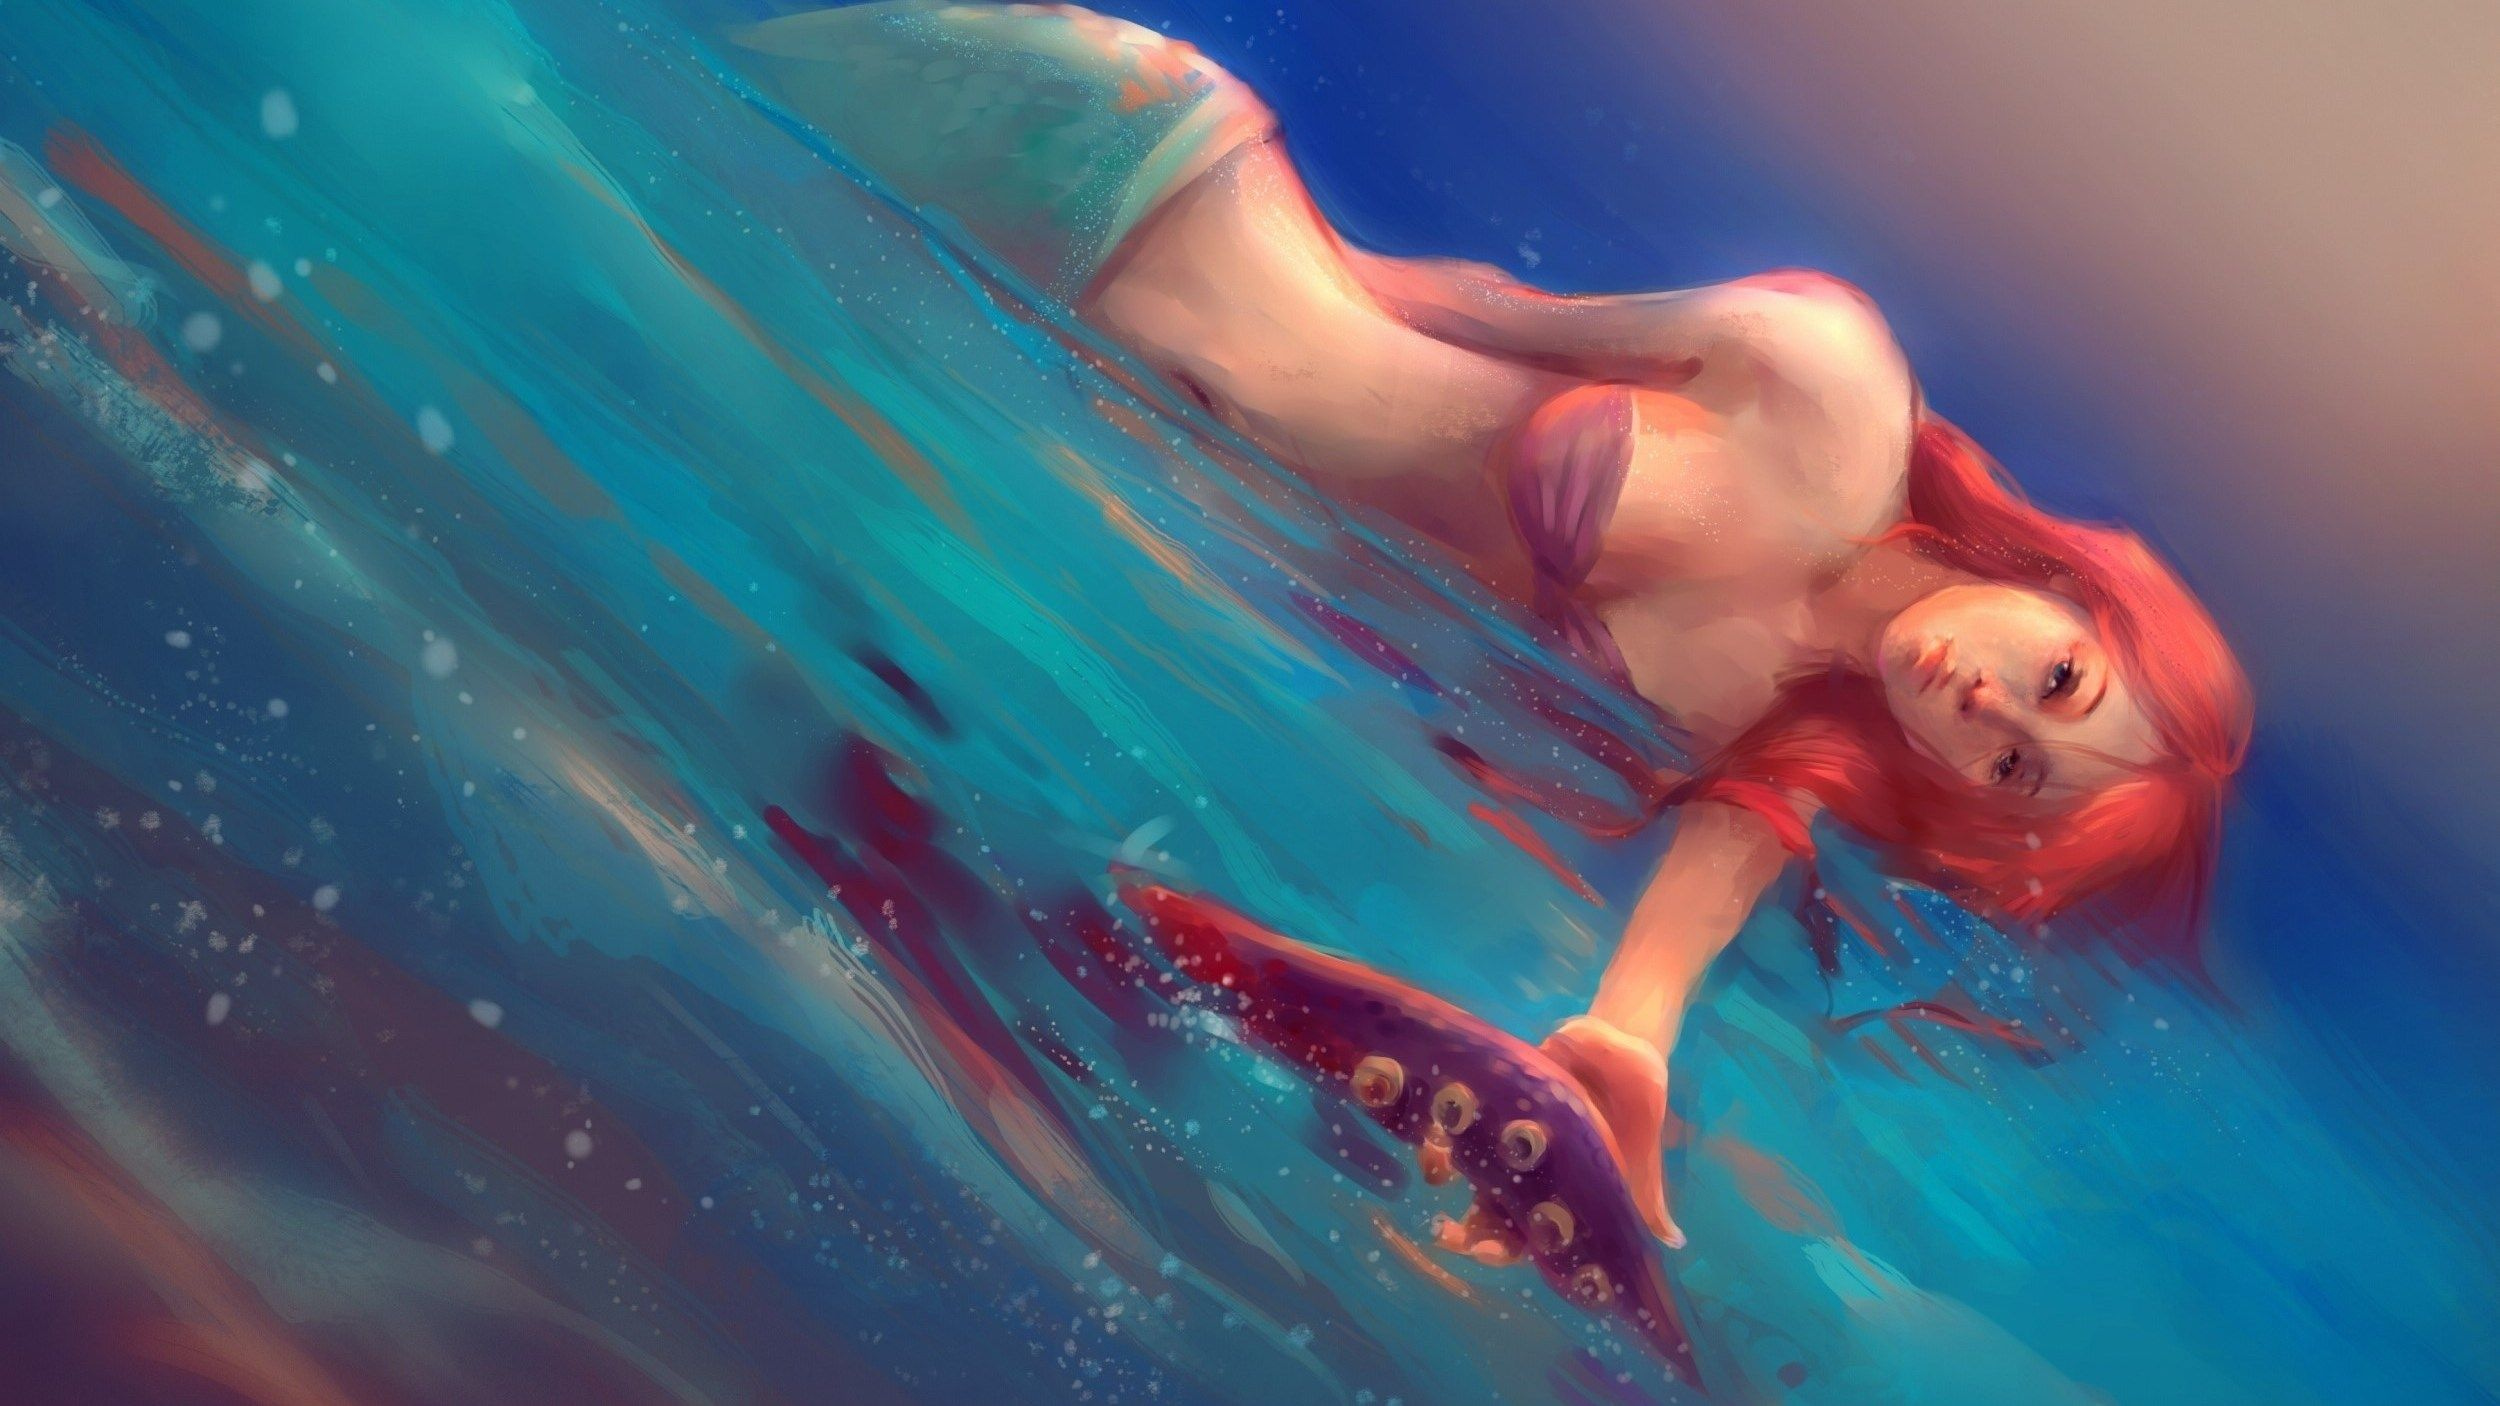 2500x1406 widescreen wallpaper mermaid Mermaid